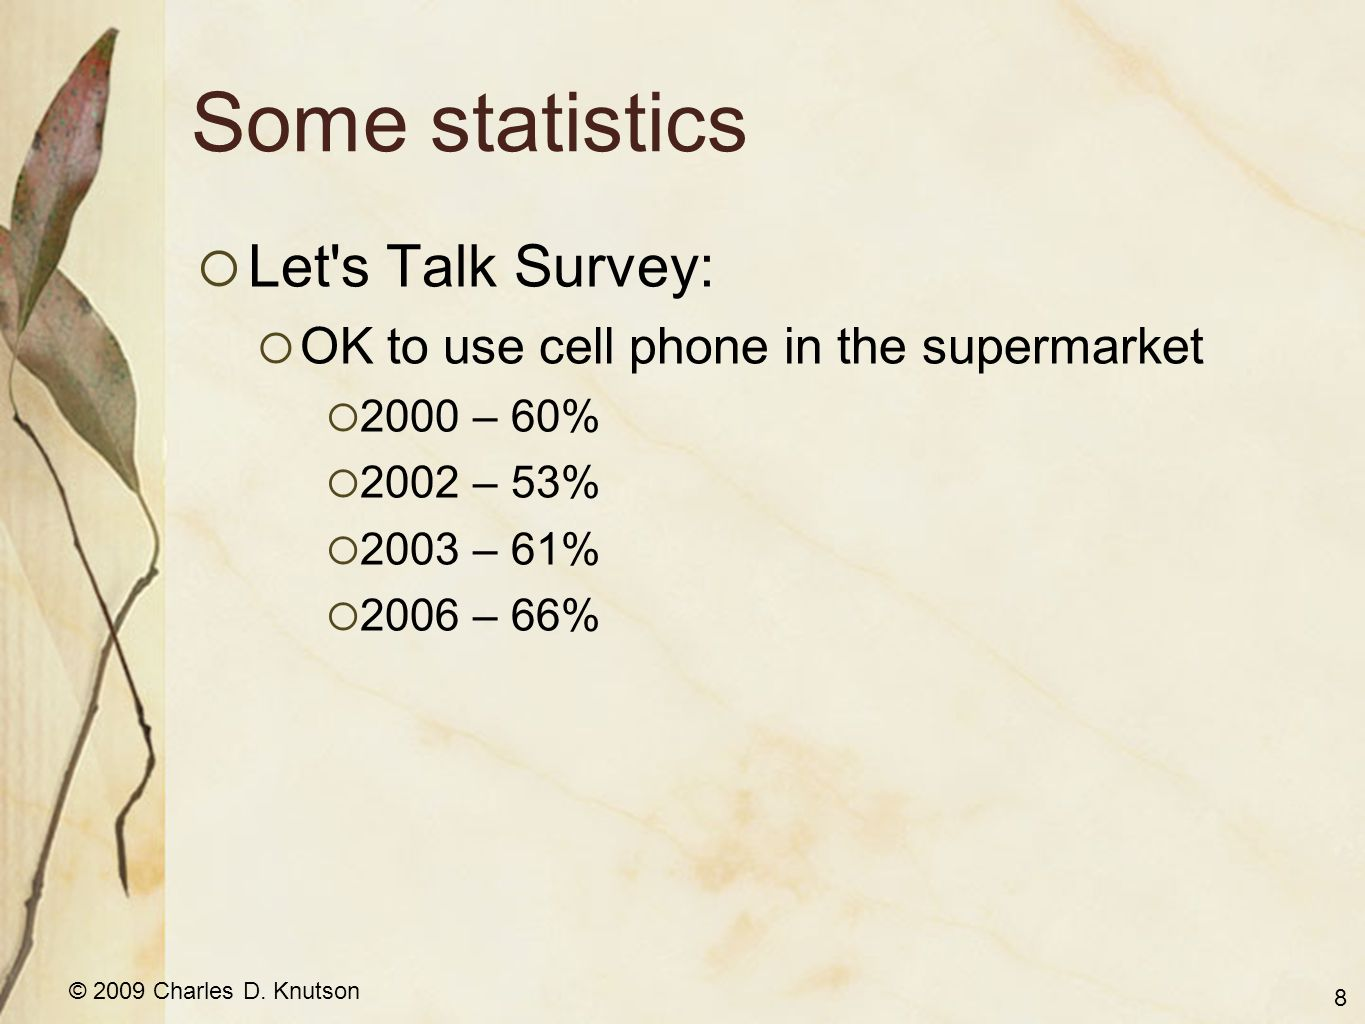 © 2009 Charles D. Knutson Some statistics  Let's Talk Survey:  OK to use cell phone in the supermarket  2000 – 60%  2002 – 53%  2003 – 61%  2006